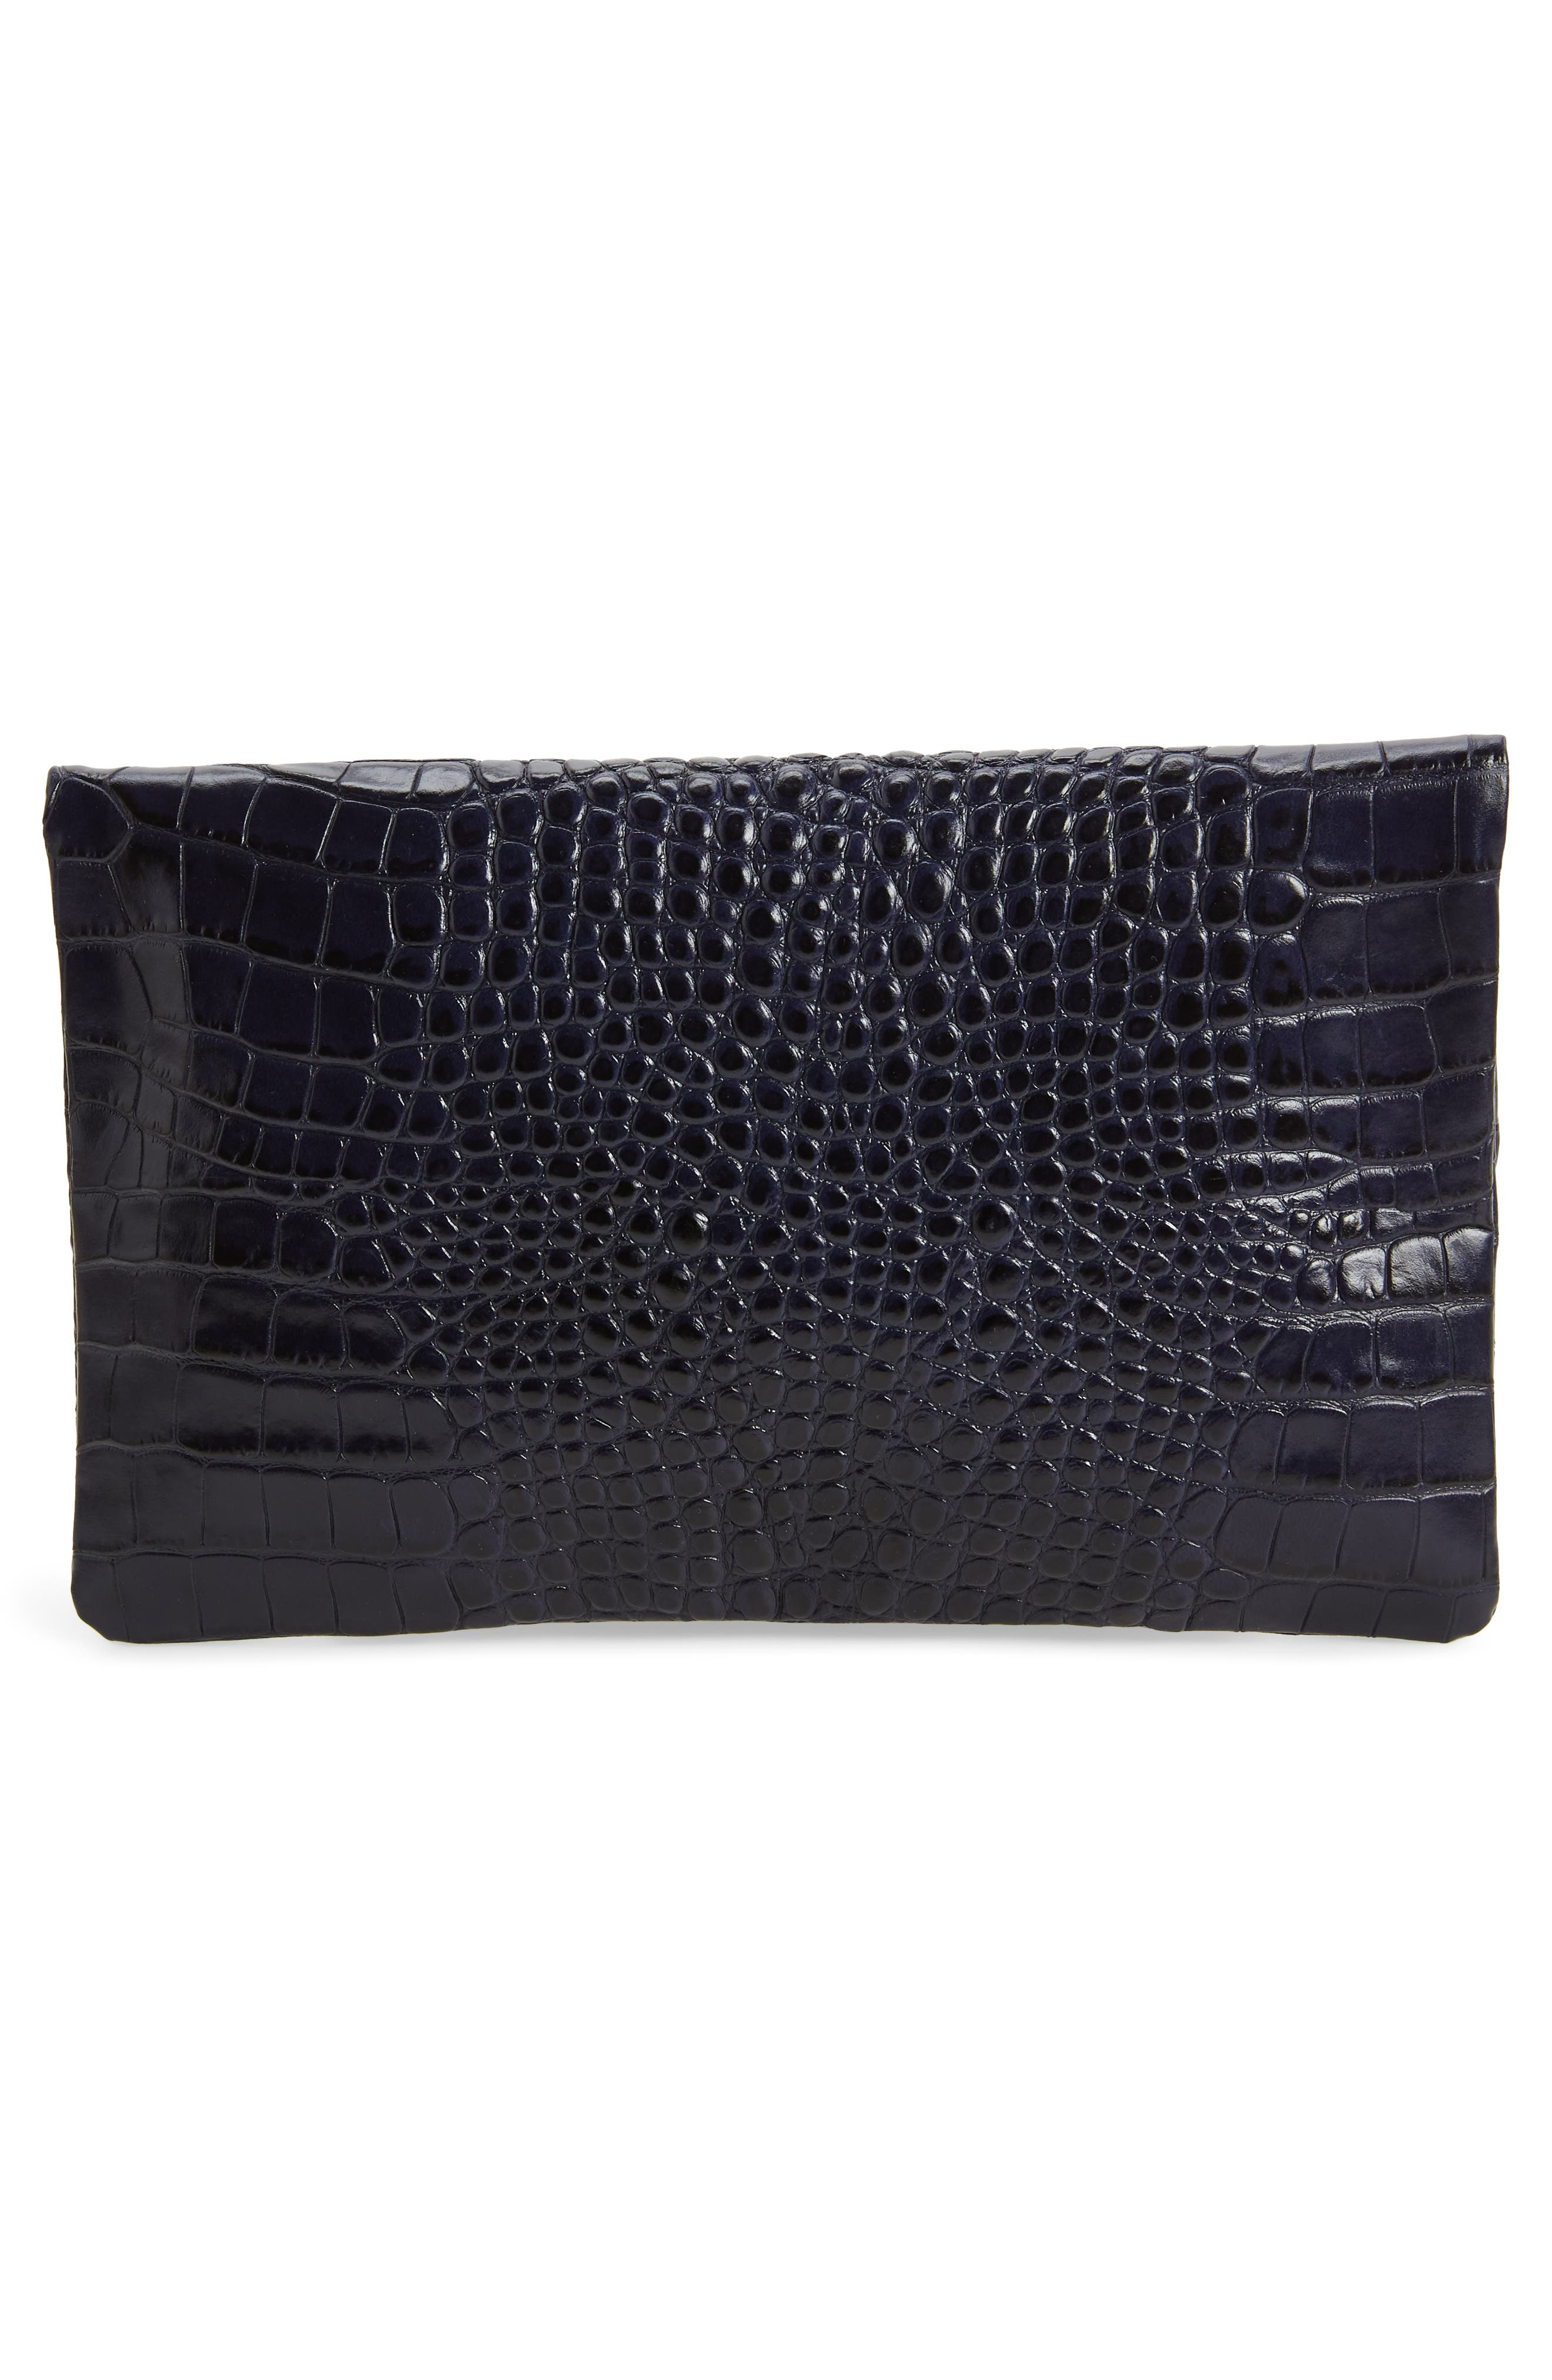 Croc Embossed Leather Foldover Clutch,                             Alternate thumbnail 3, color,                             MIDNIGHT CROCO